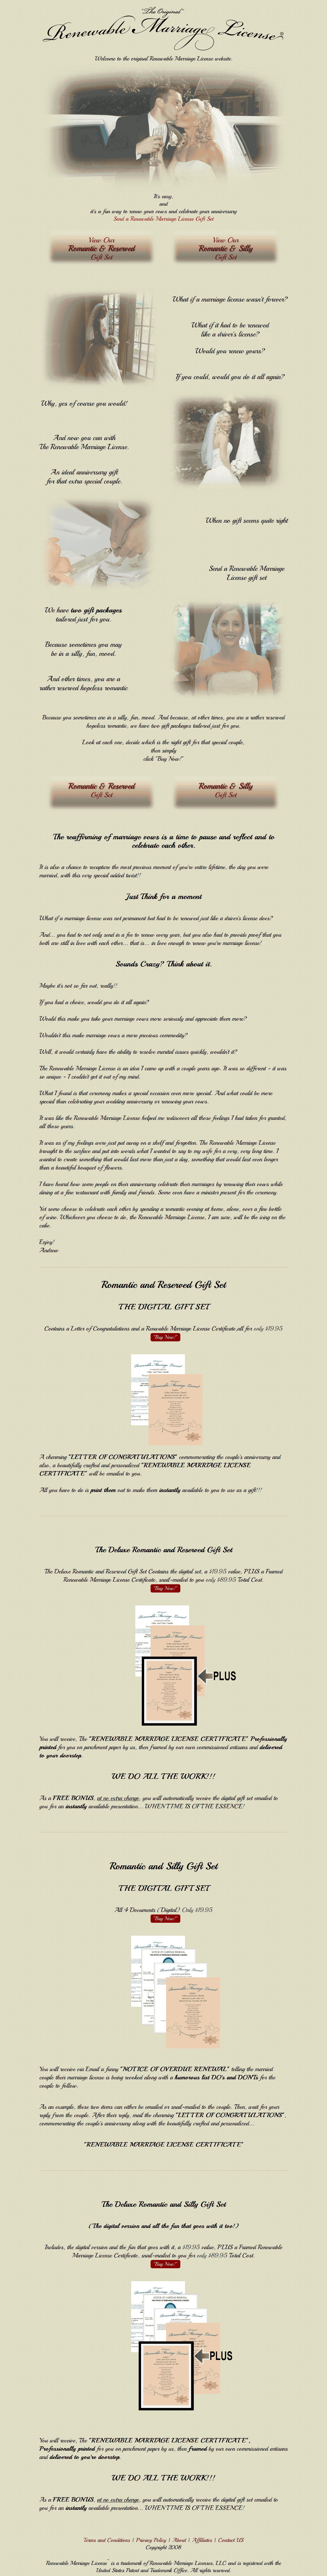 PHP Website for Marriage License Renewal Service 'RML'